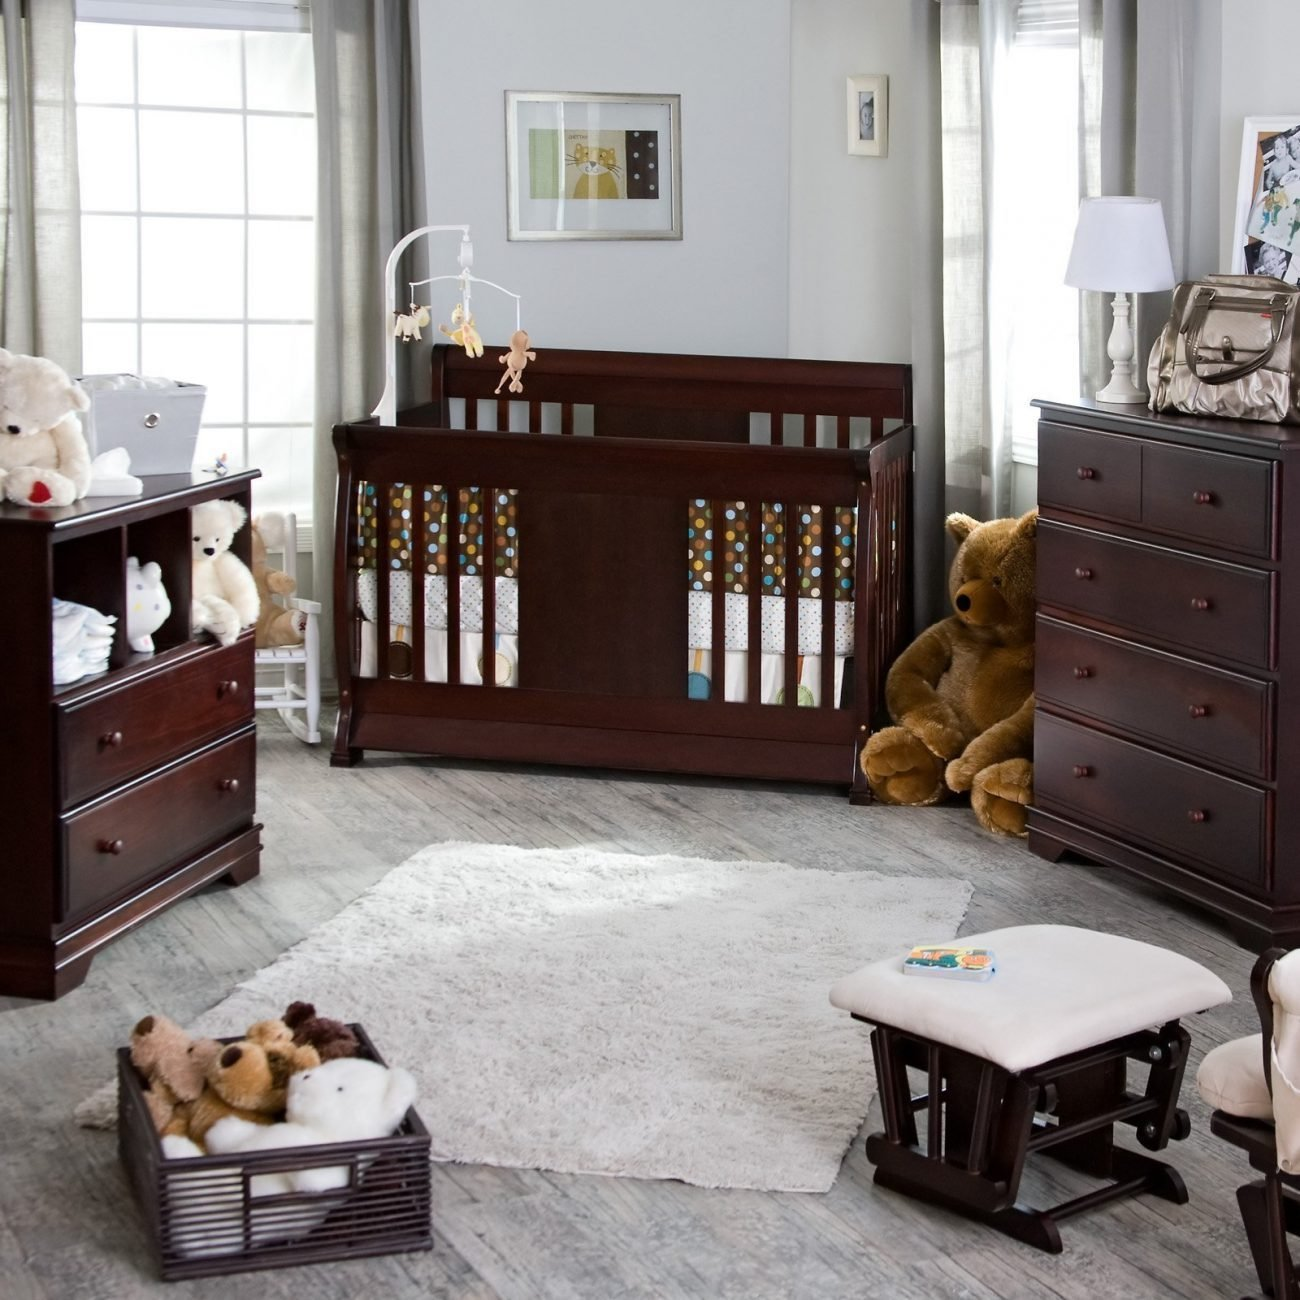 Best Types Of Used Baby Furniture Theydesign Net Theydesign Net With Pictures